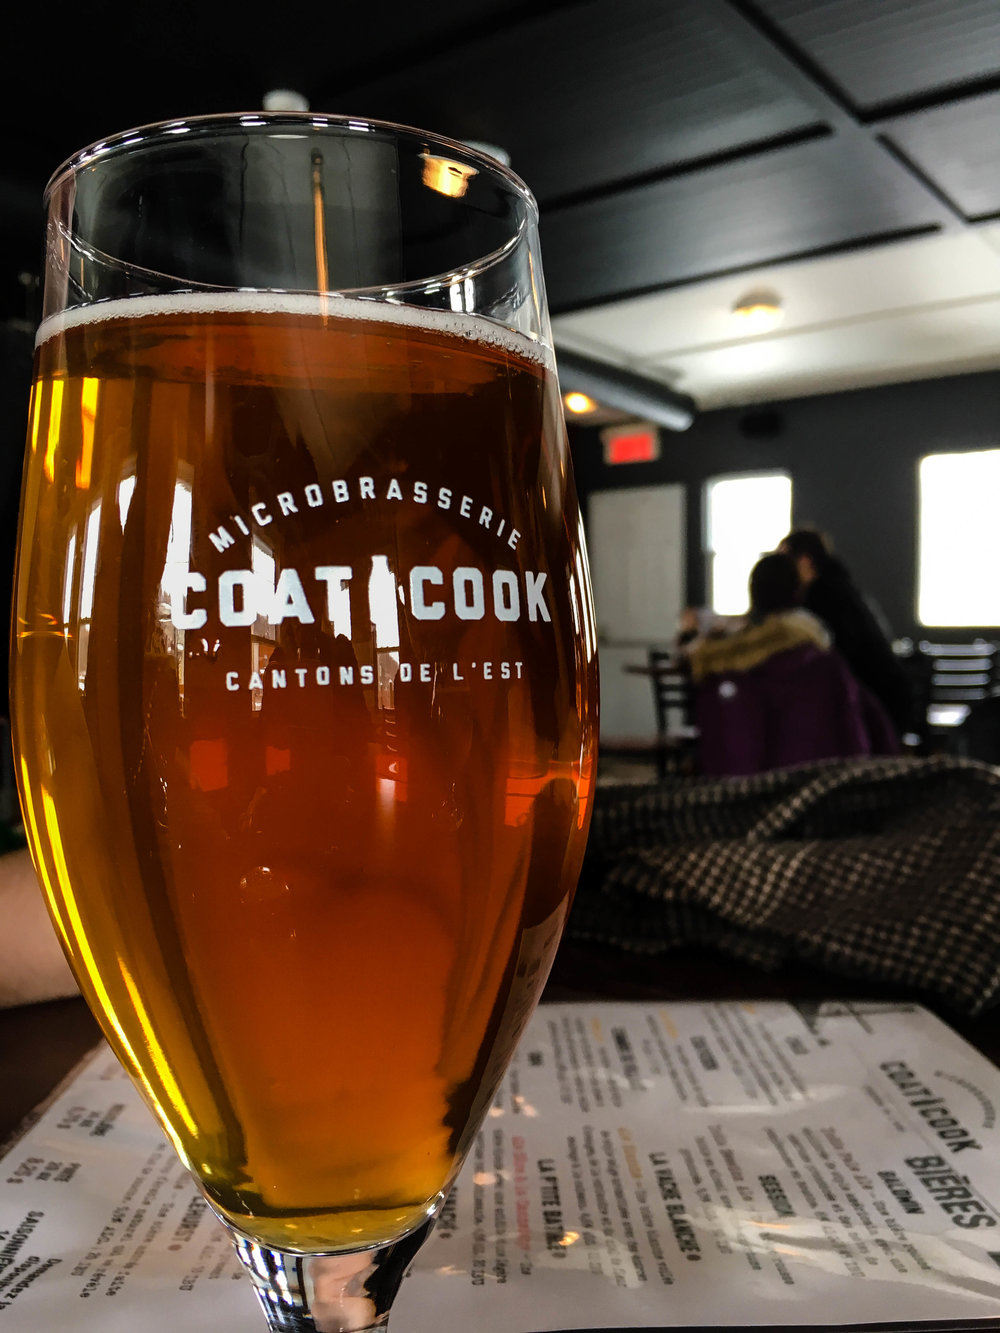 Coaticook brewery